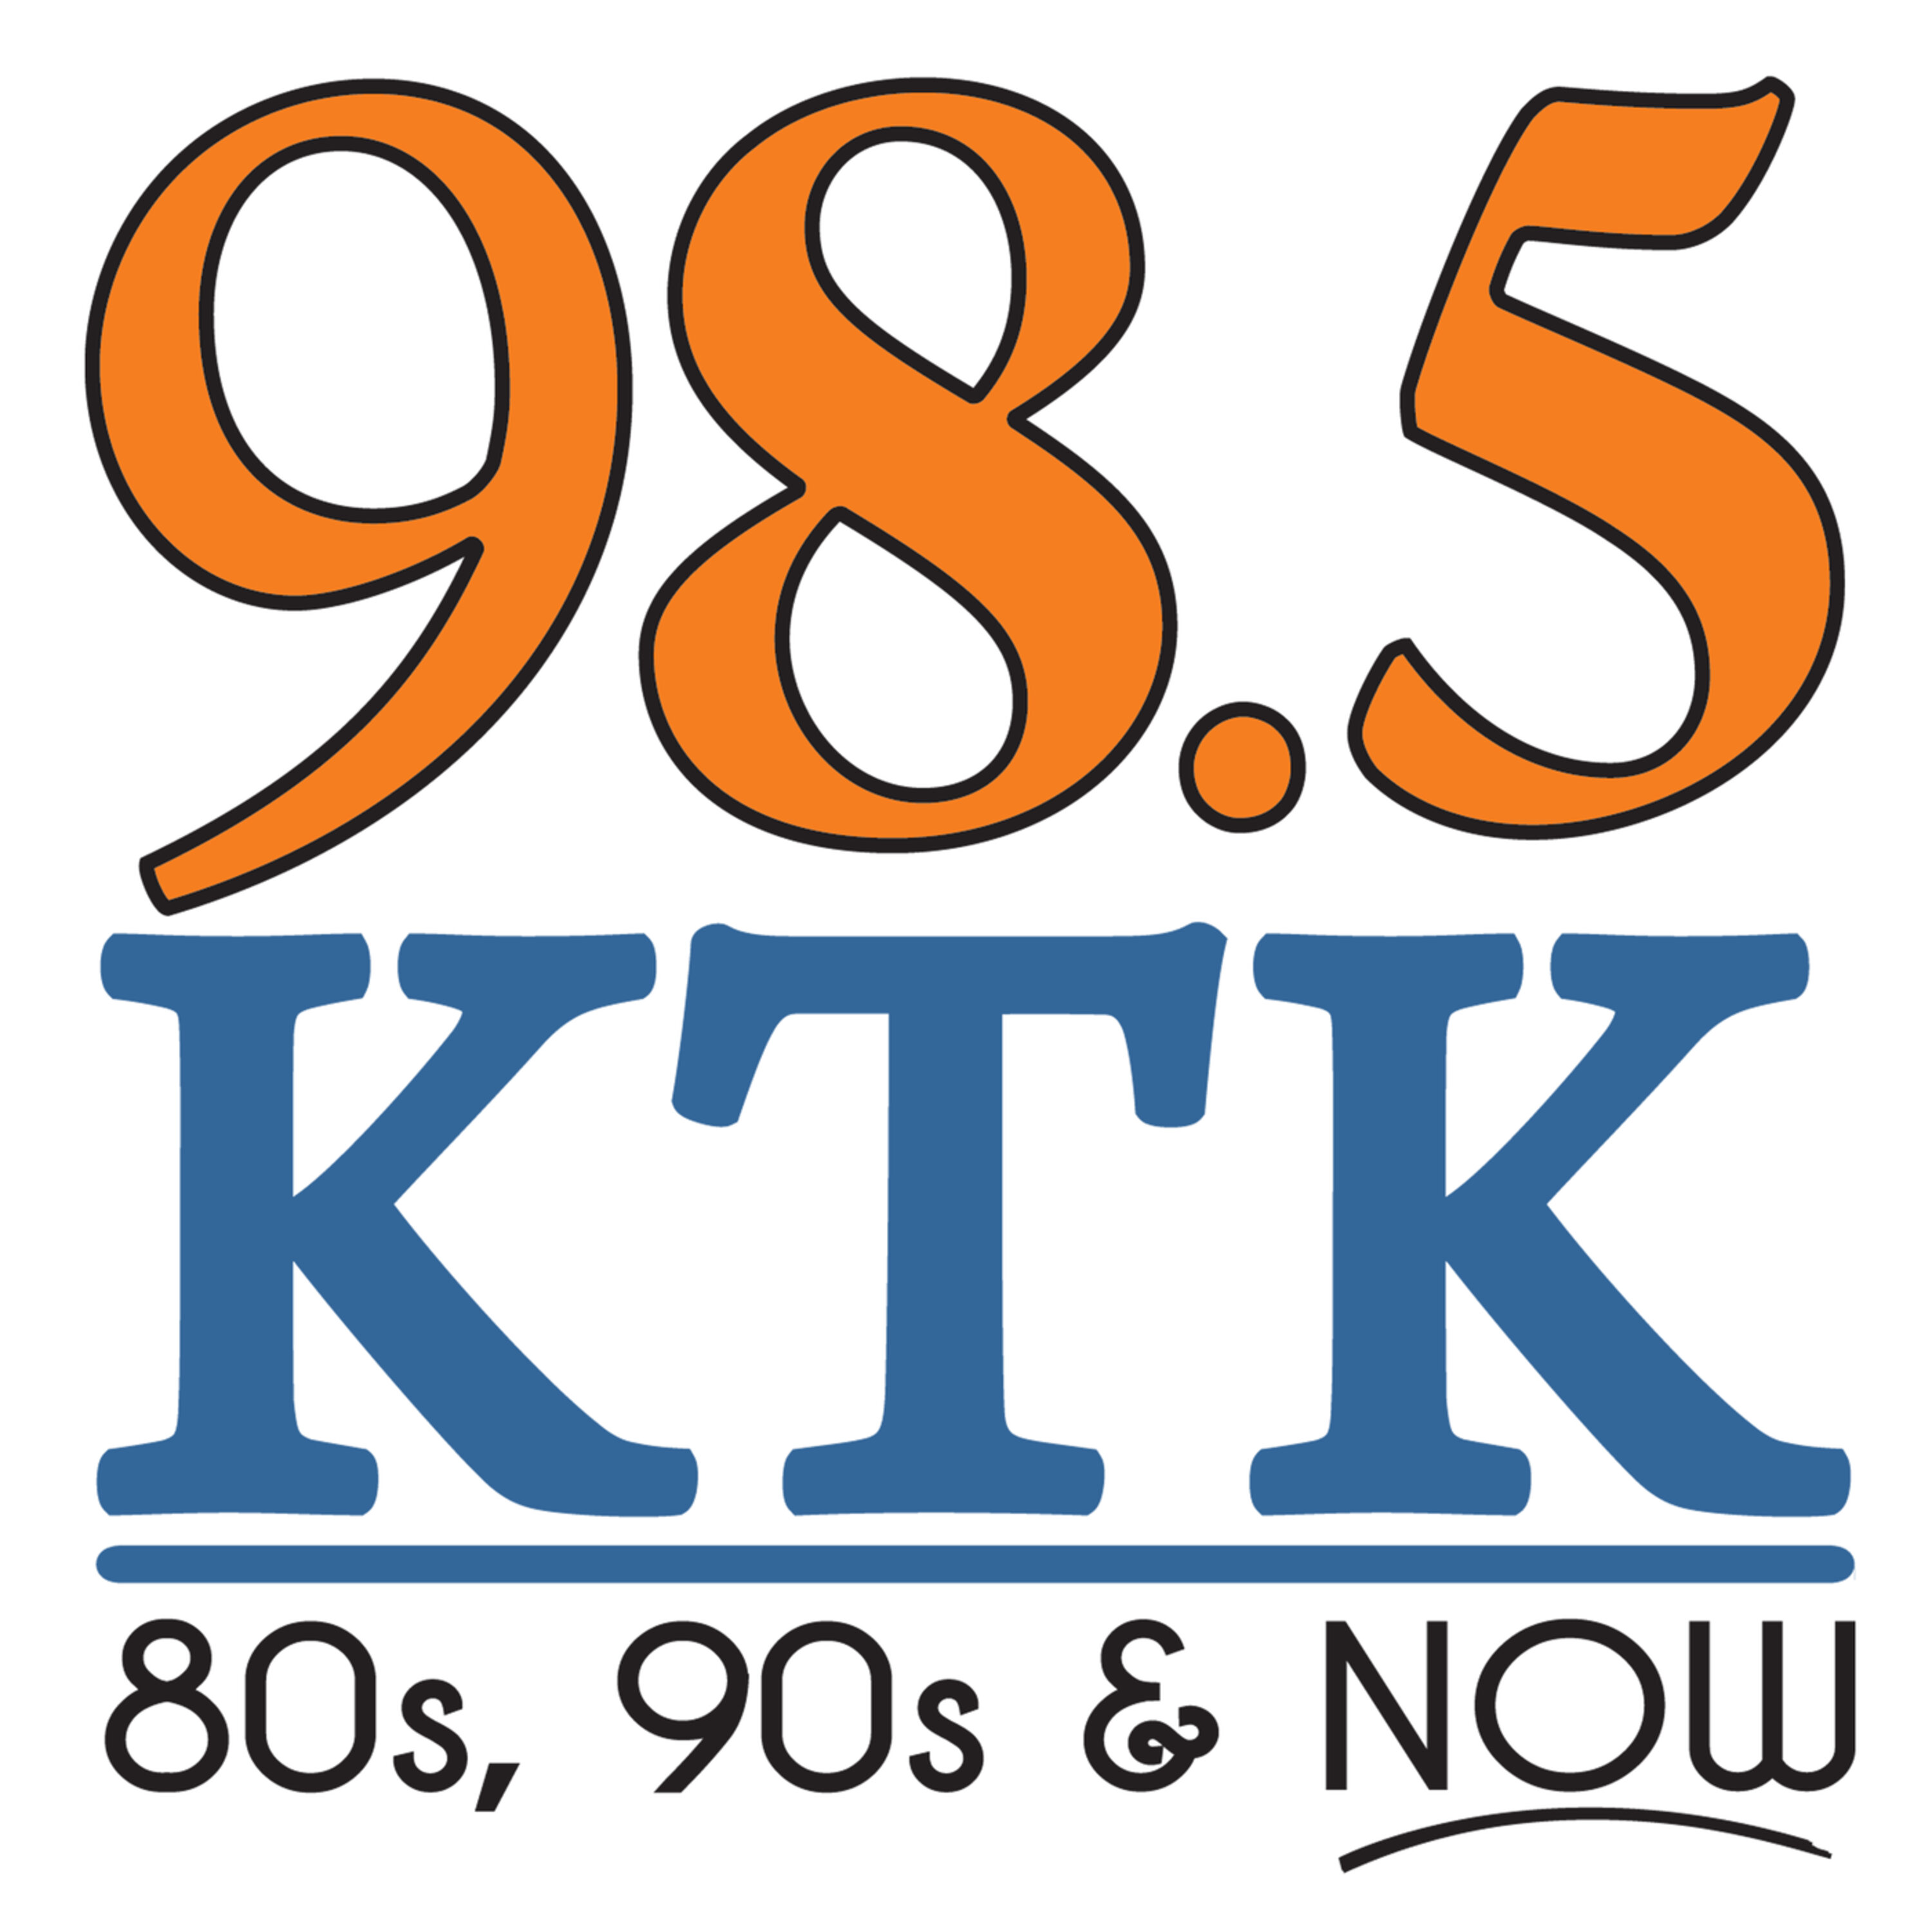 6 18 19-KTK MORNING SHOW-Sleeping With Lights On May Cause